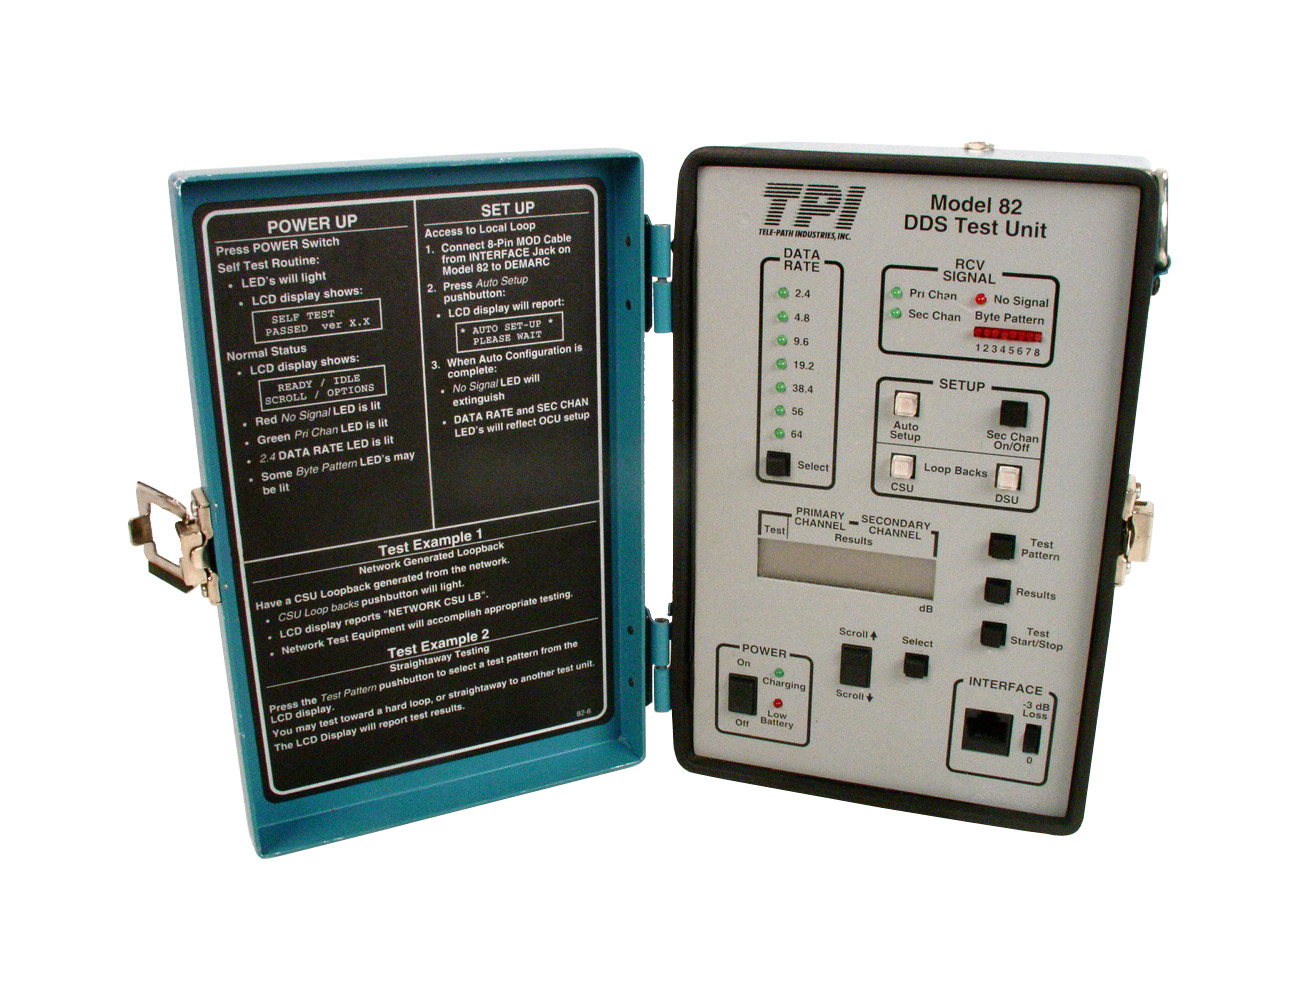 TPI 82 for sale